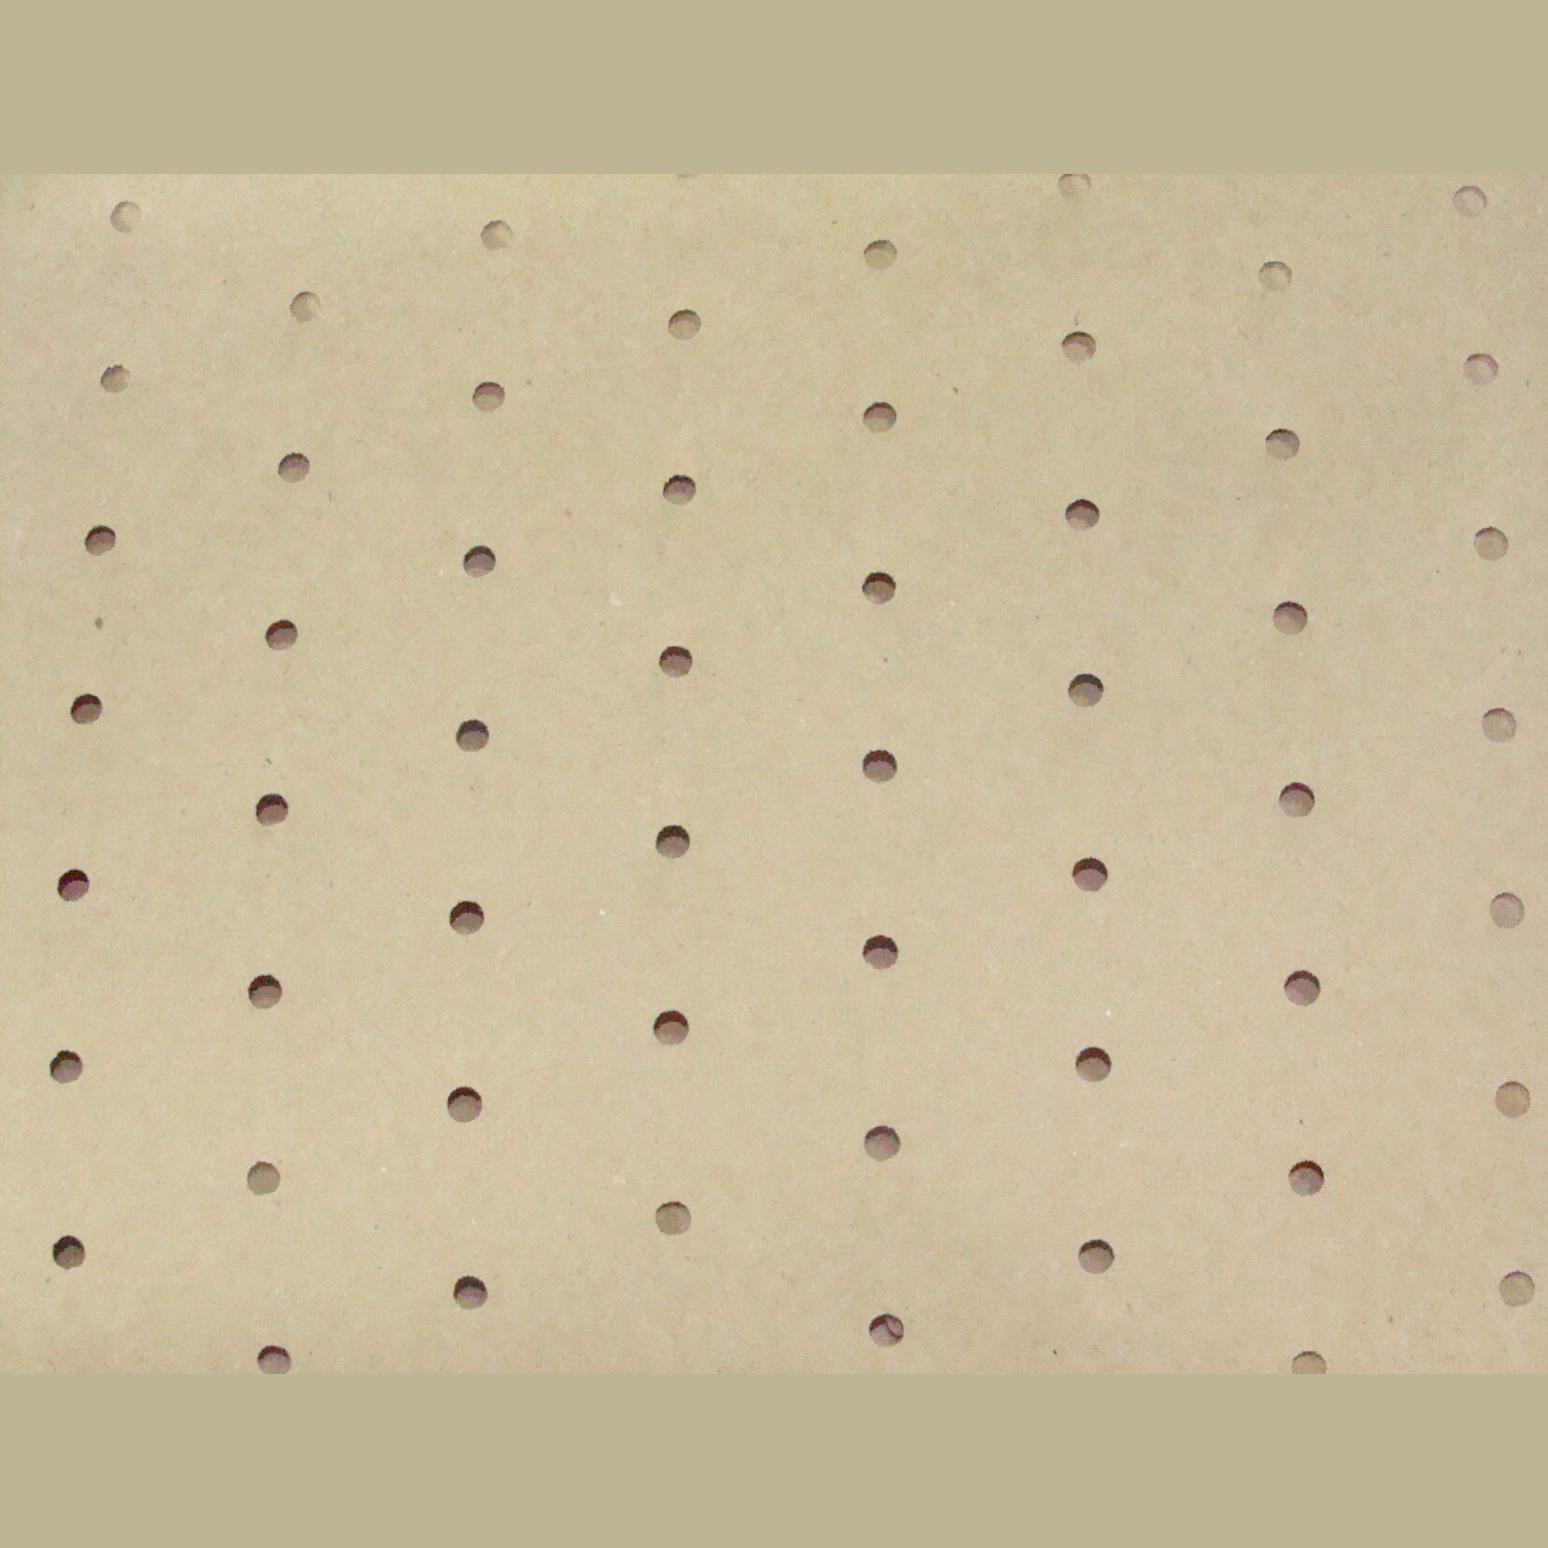 UP11072 182cm Perforated heavy duty underlay 110gsm x 150m-0